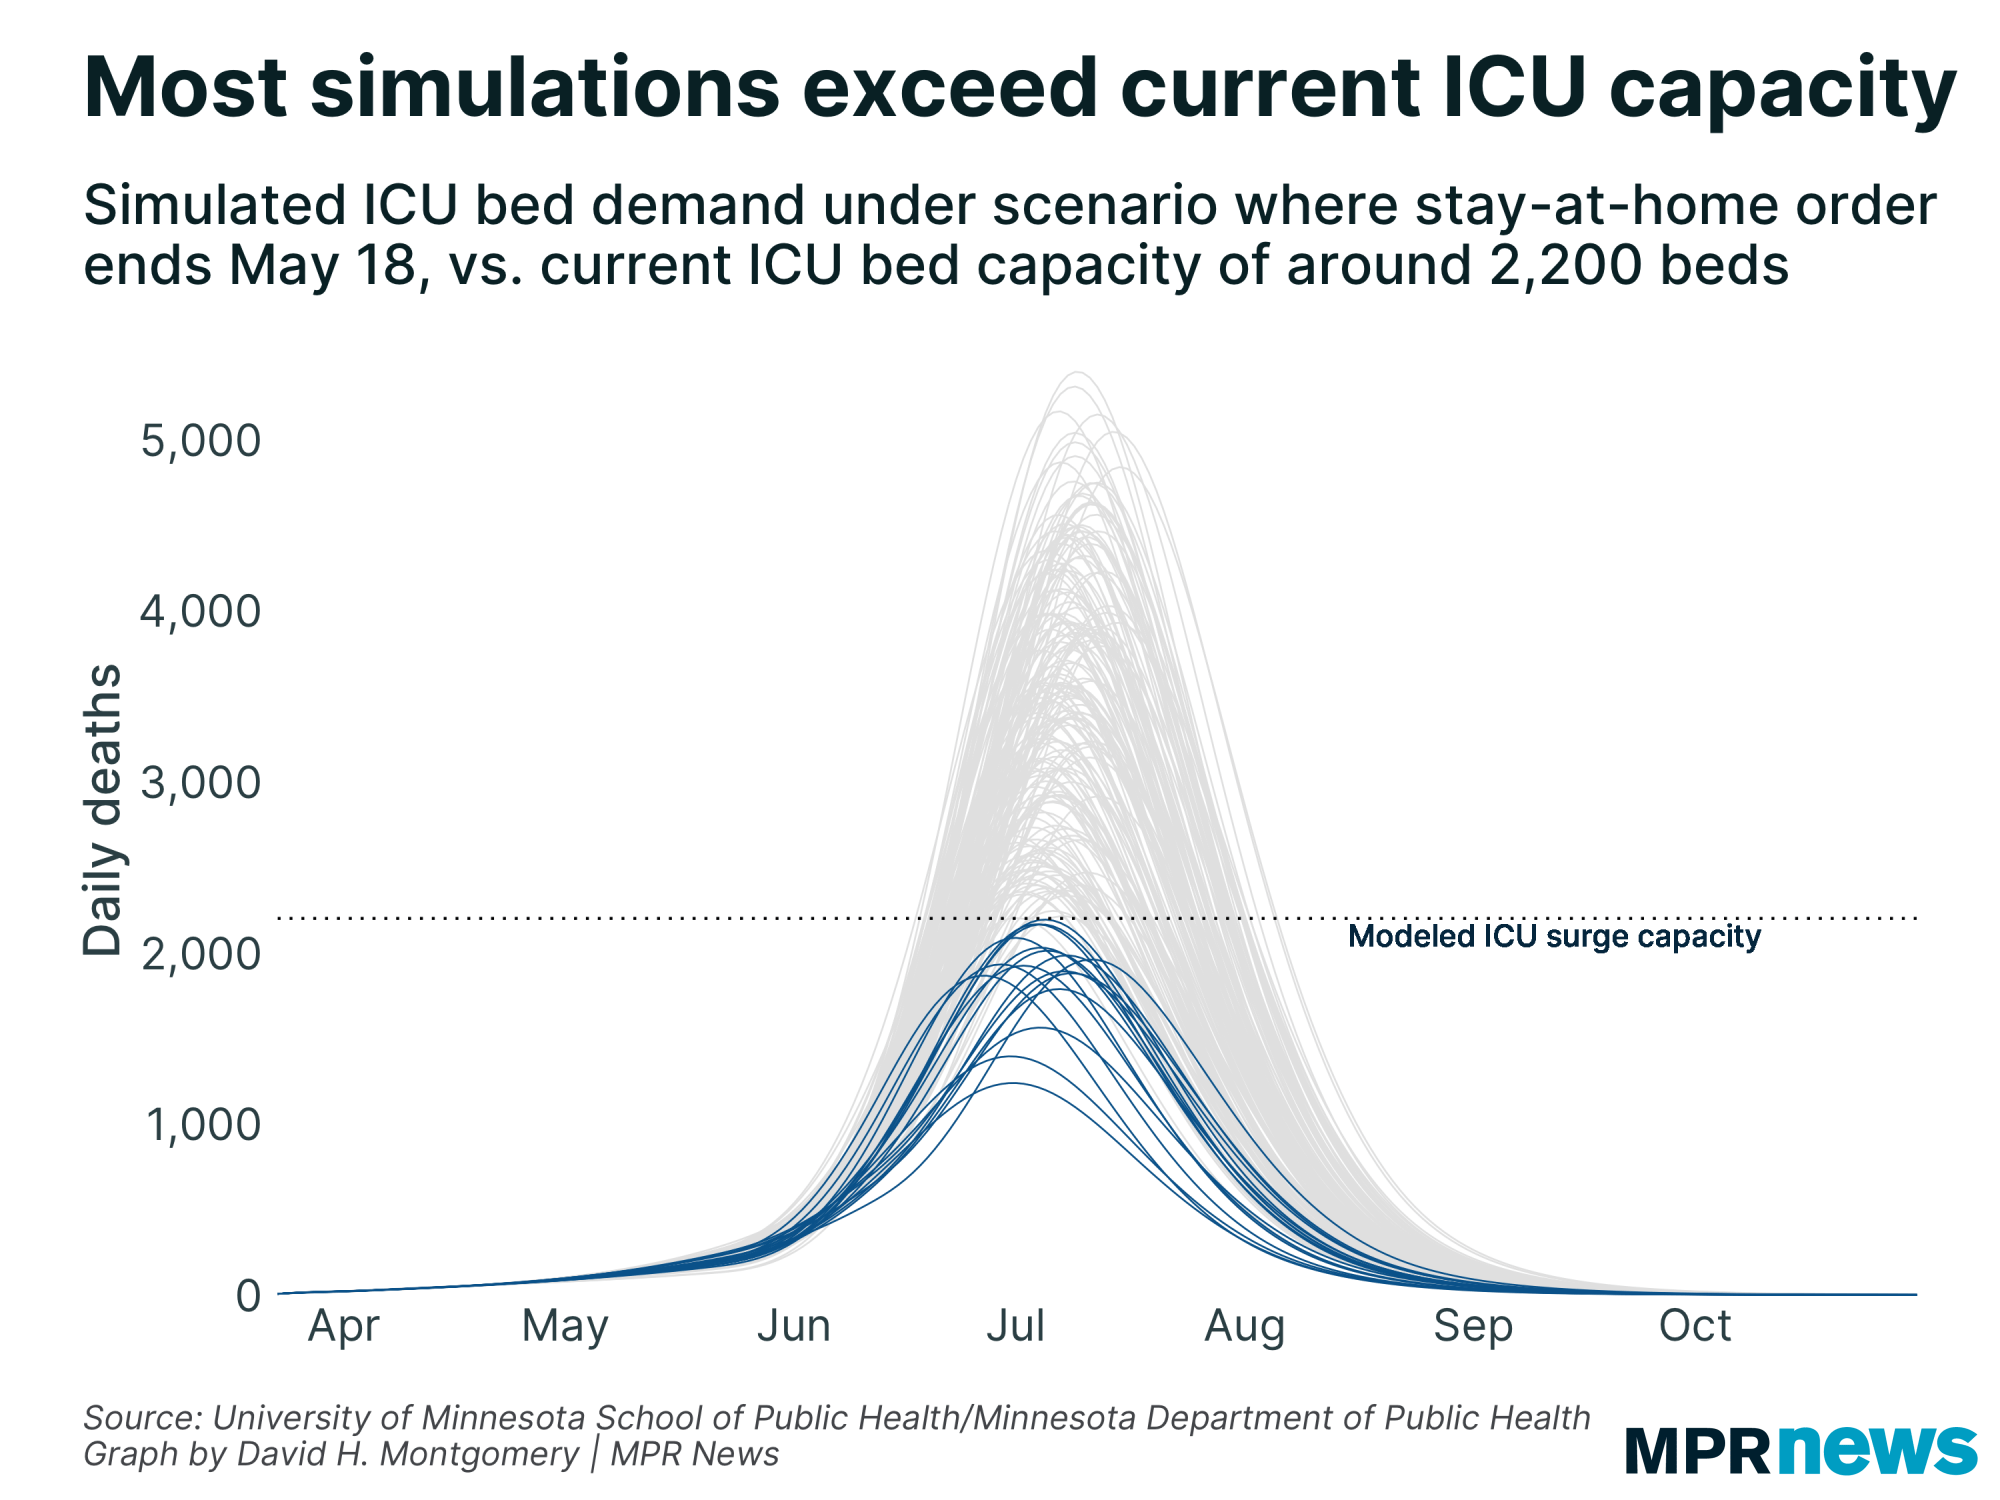 Minnesotas COVID-19 model predicts exceeding ICU capacity is likely